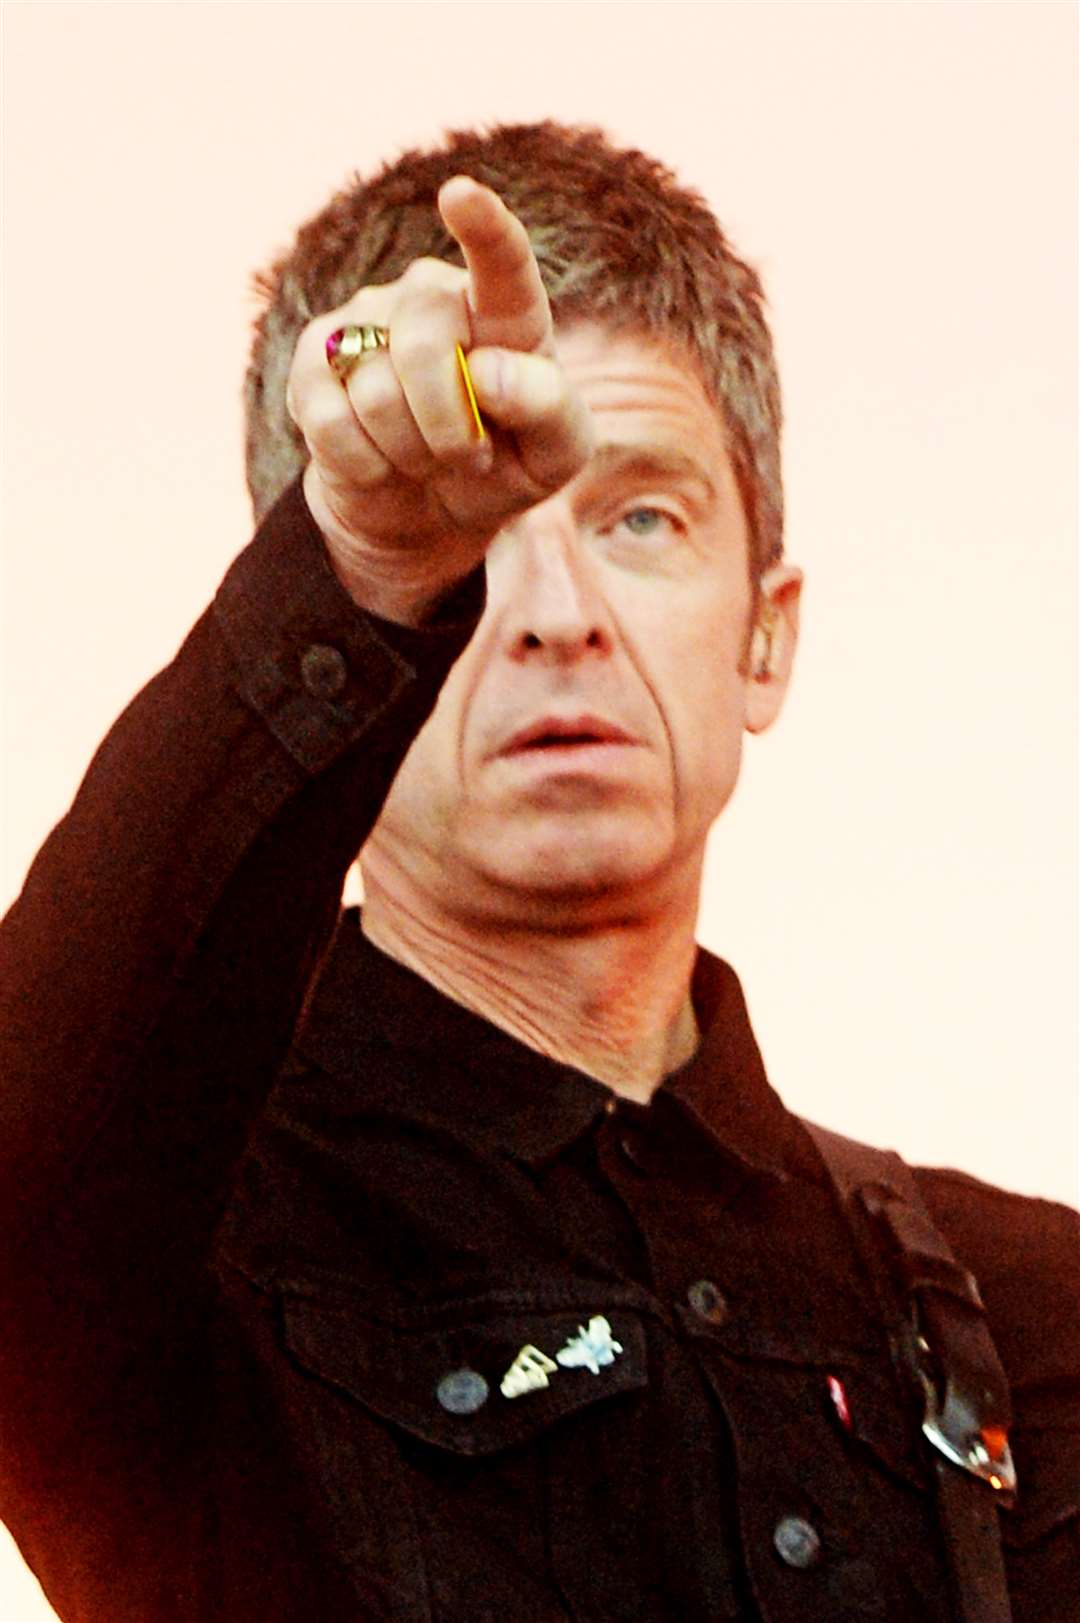 Noel Gallagher reaches out to the Inverness crowd. Picture: Gair Fraser